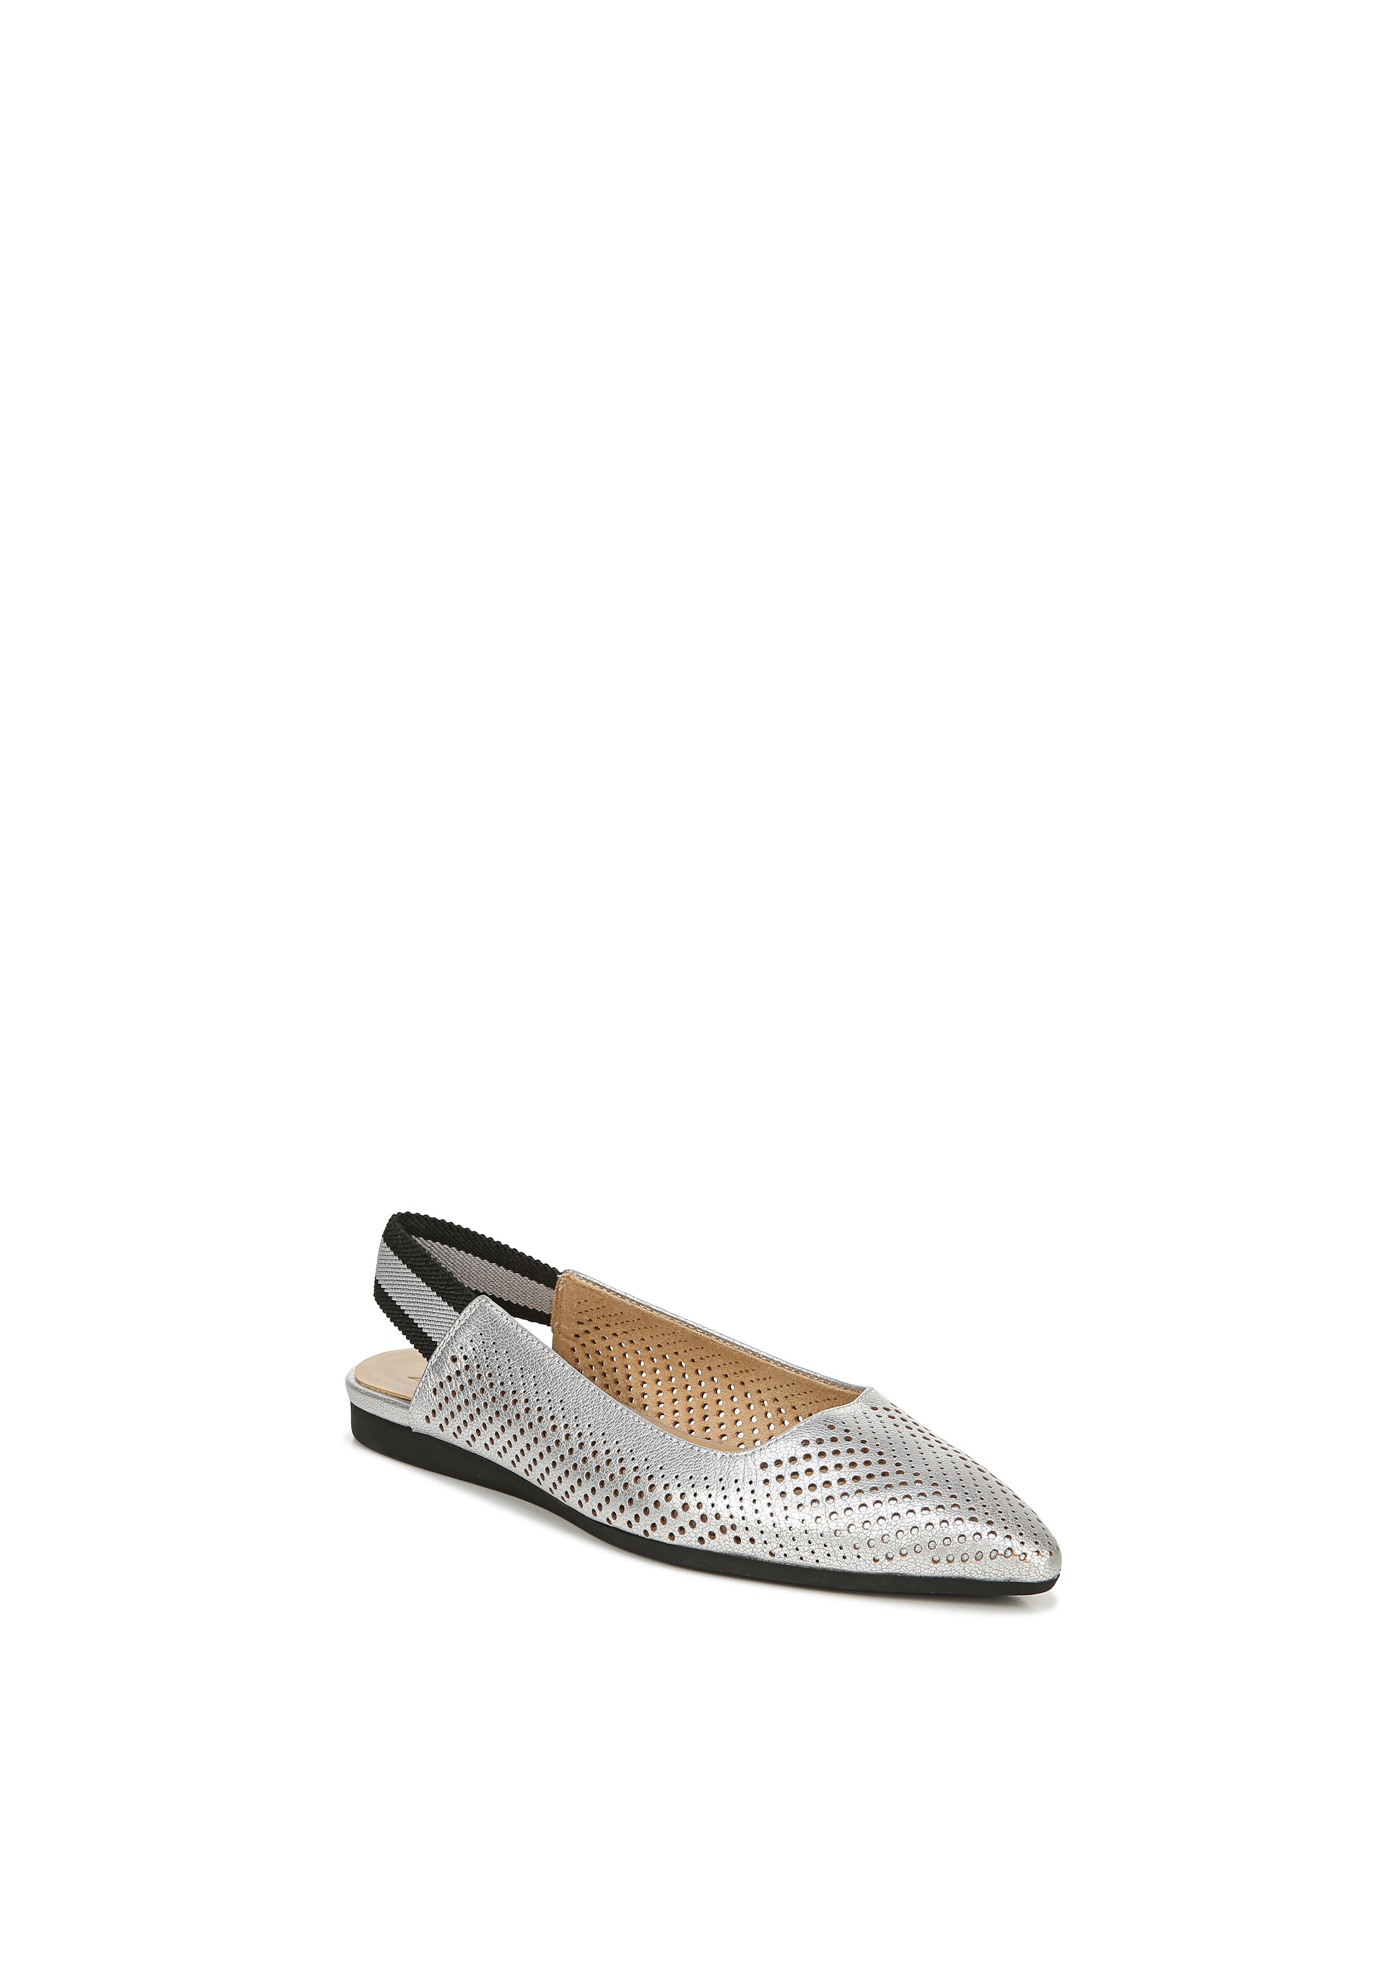 Rory2 Slingback by Naturalizer,